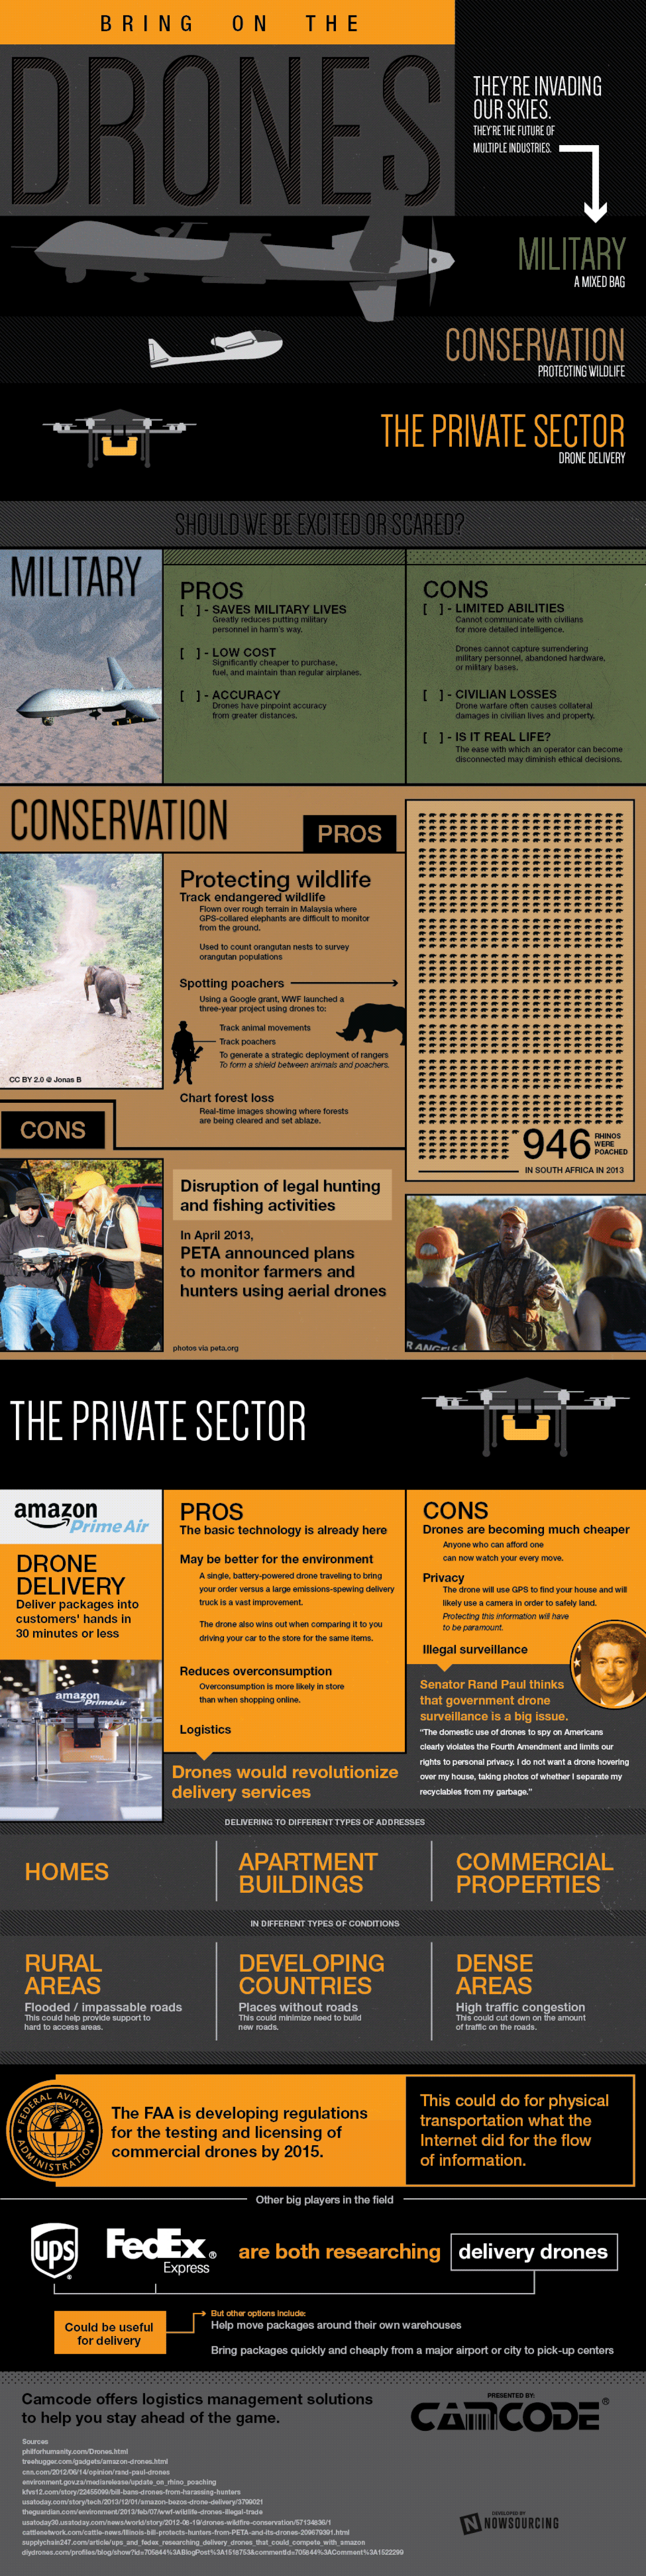 Drones: Should we be Excited or Scared? Infographic